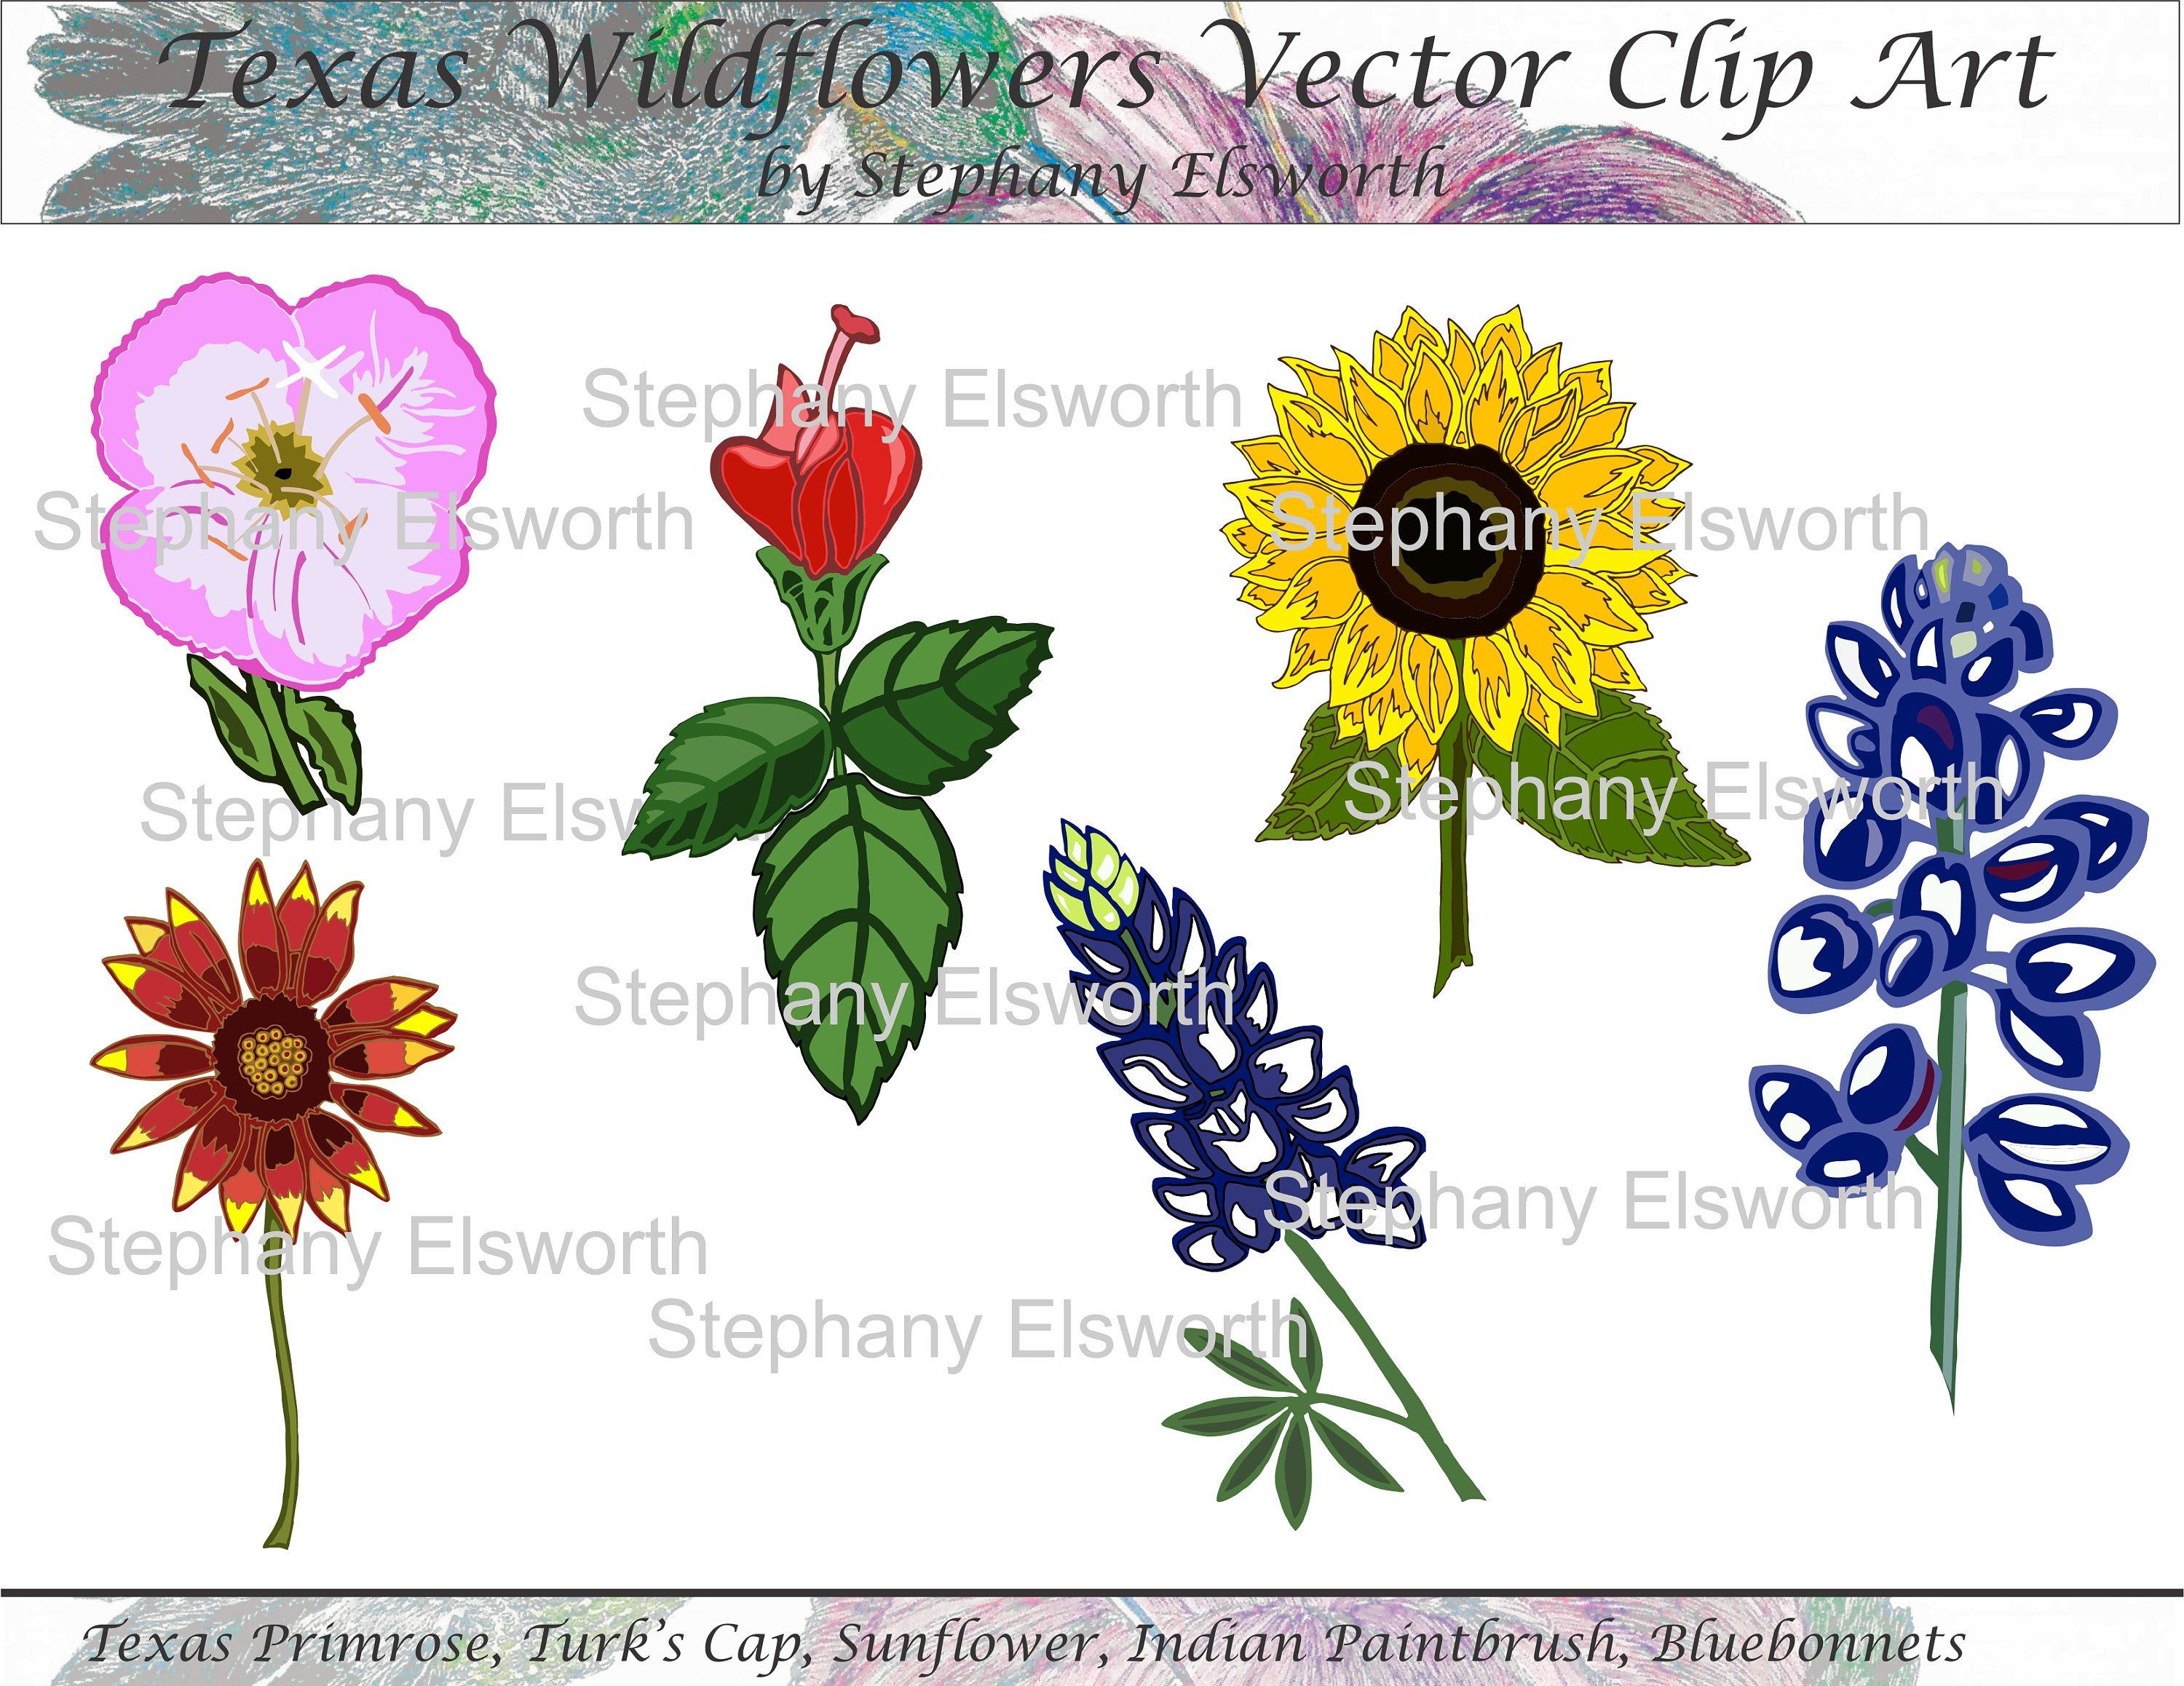 Texas Wildflowers Vector Clip Art | Clip art and Tatting